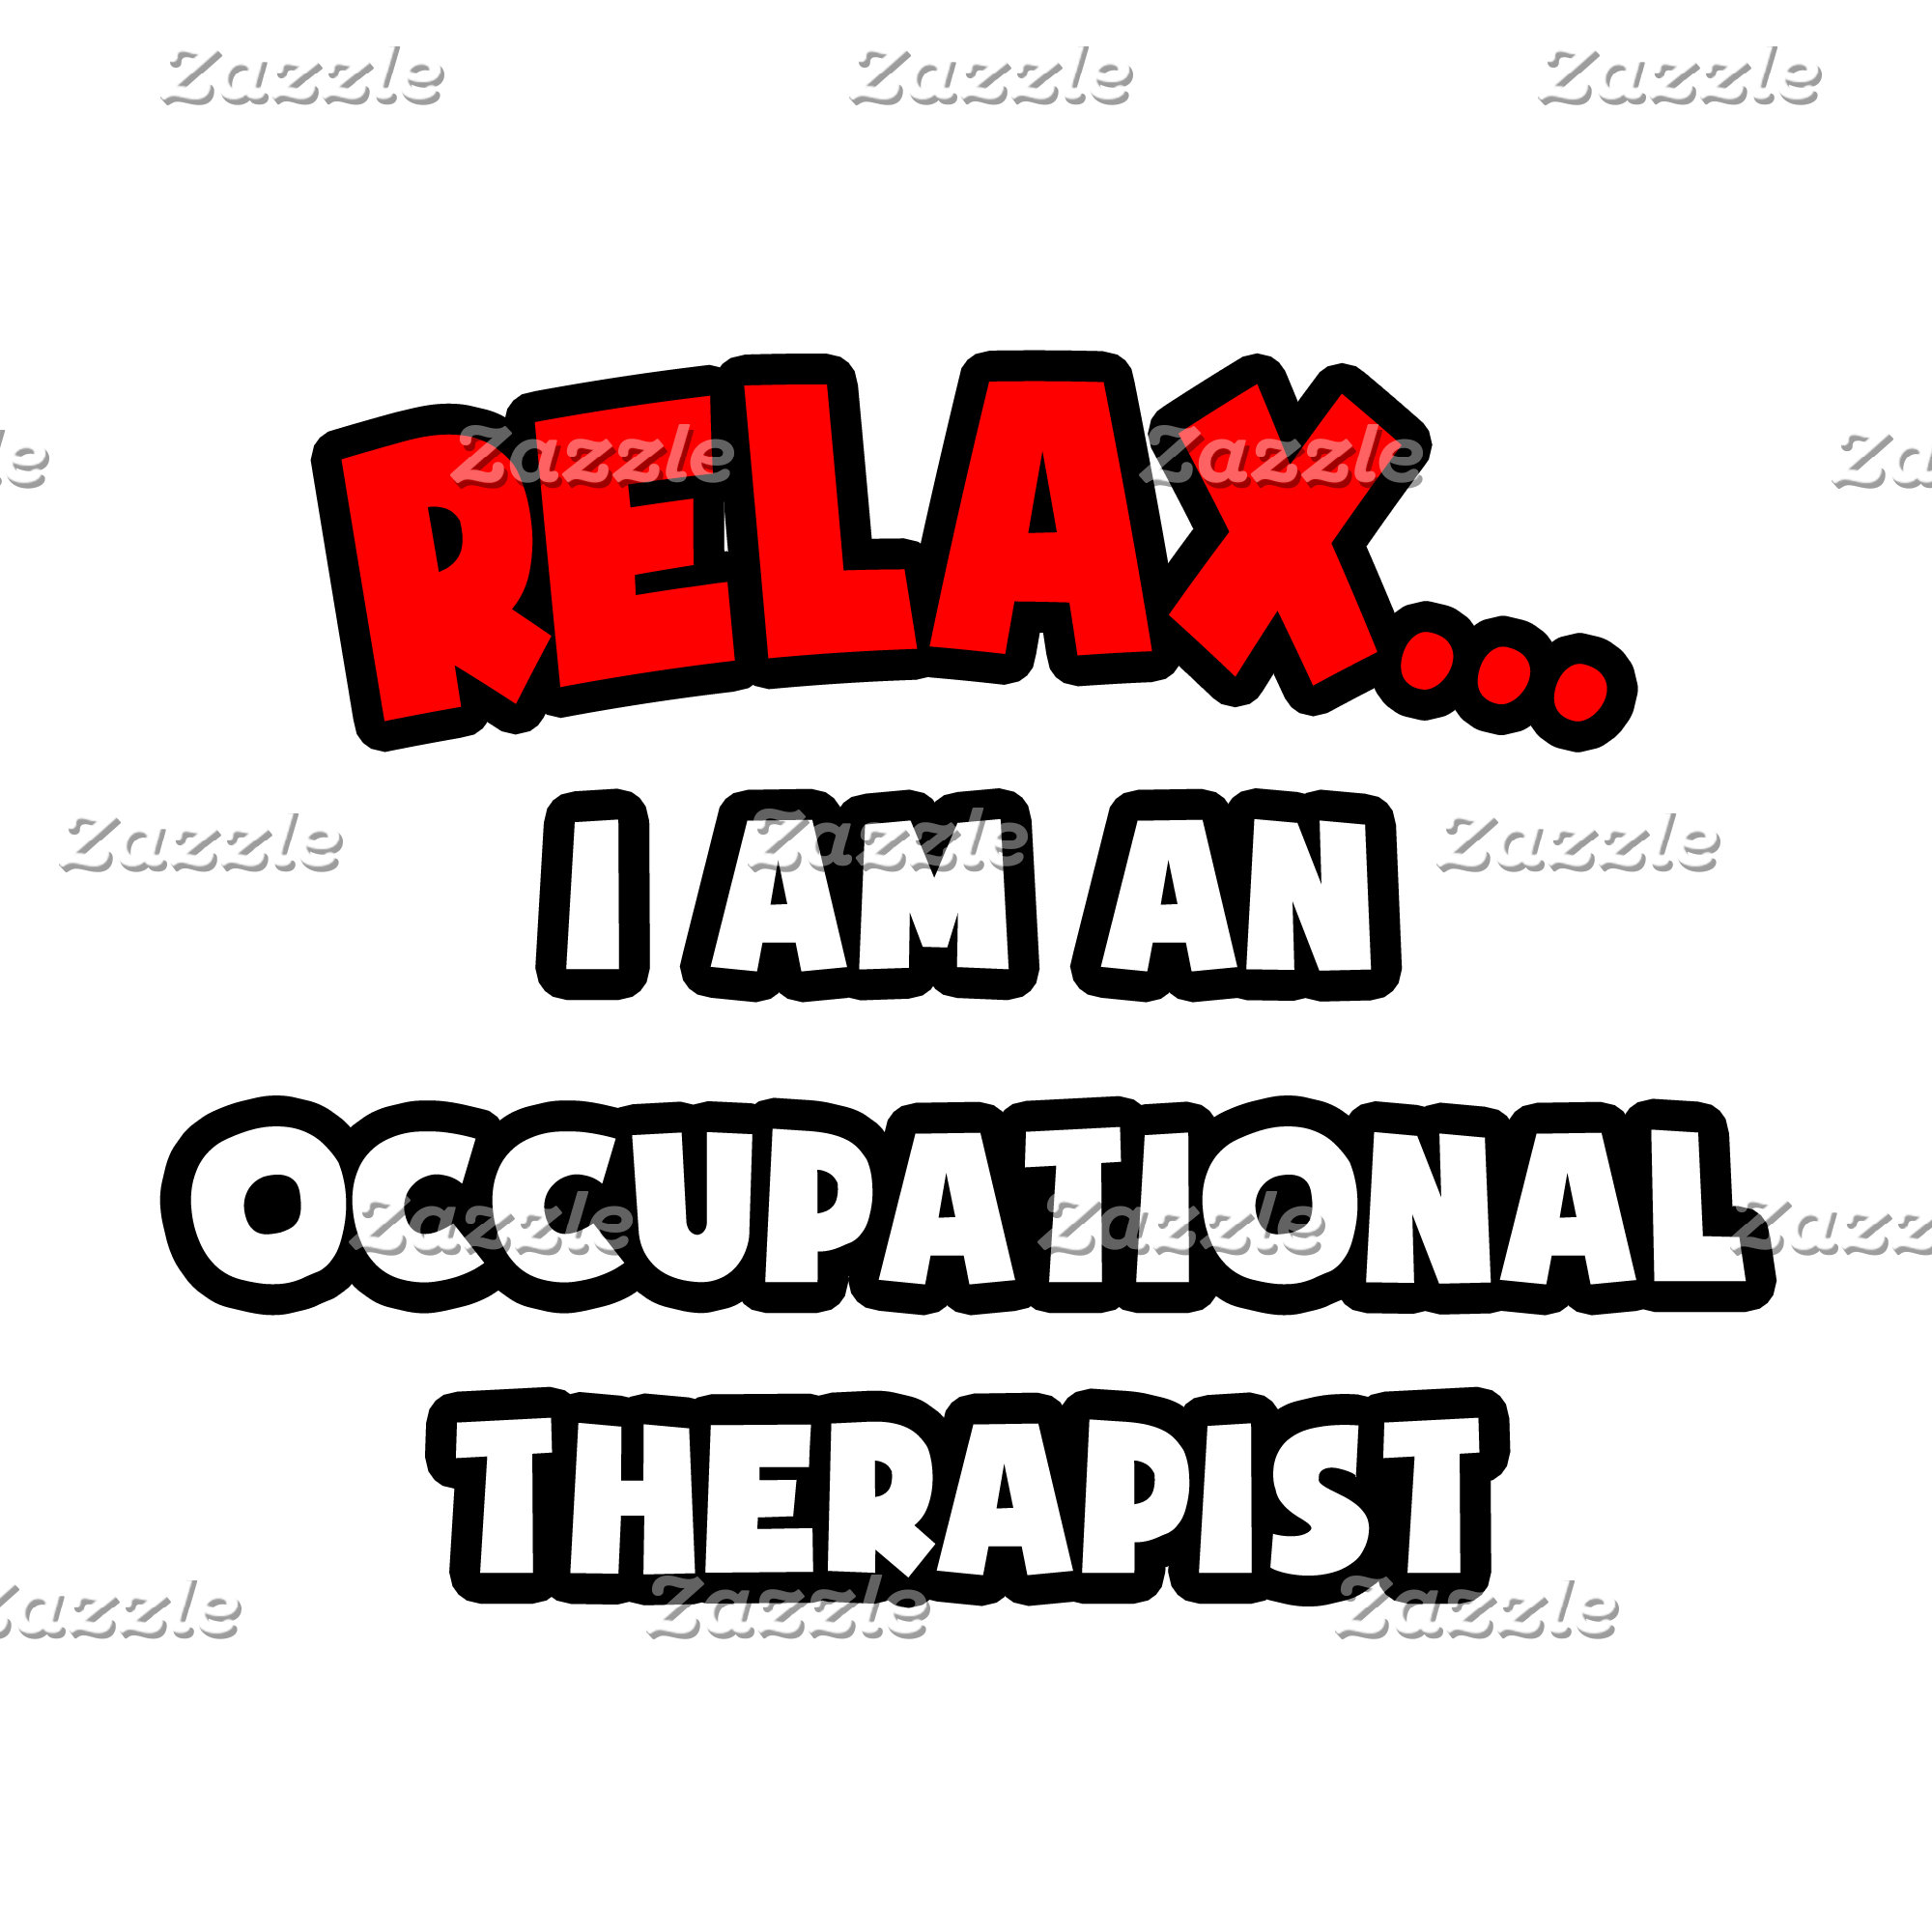 Relax ... I am an Occupational Therapist